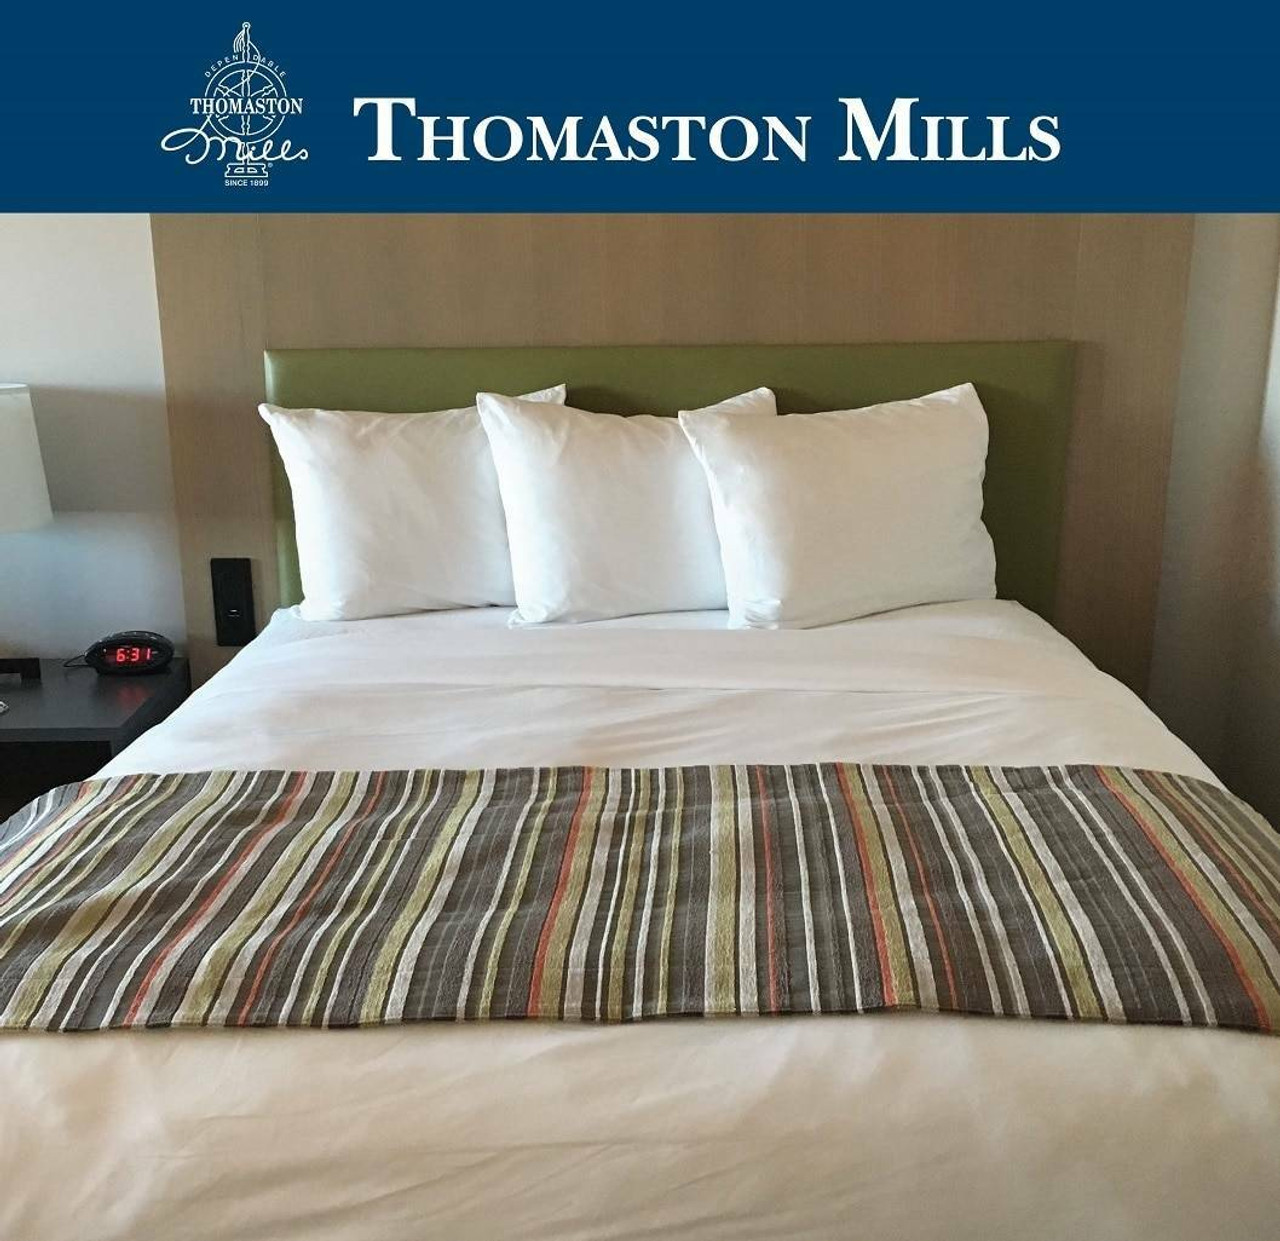 THOMASTON MILLS T250 Royal Suite by Thomason Mills - All Sizes and Colors